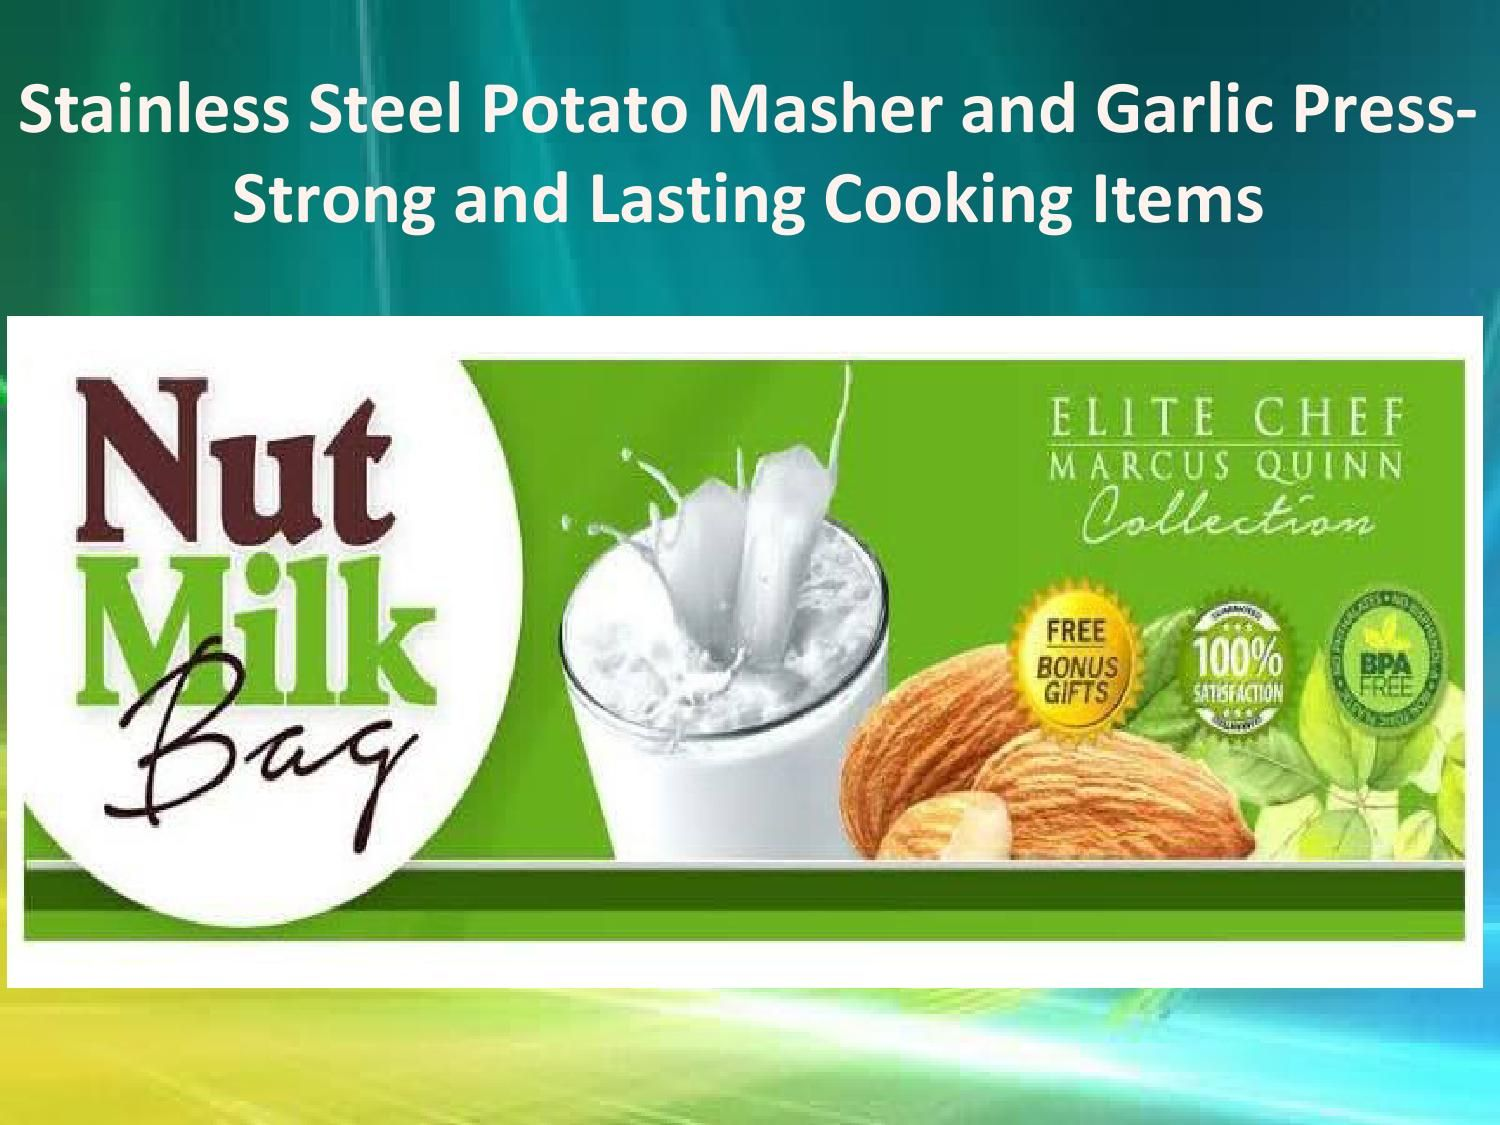 Stainless steel potato masher and garlic press strong and lasting cooking items  Looking for a stainless steel potato masher? We provide the best potato masher for quick and easy mashing. Perfect for small, large or jumbo potatoes. Rustproof and dishwasher safe. Explore Elitechefcollection.com now.